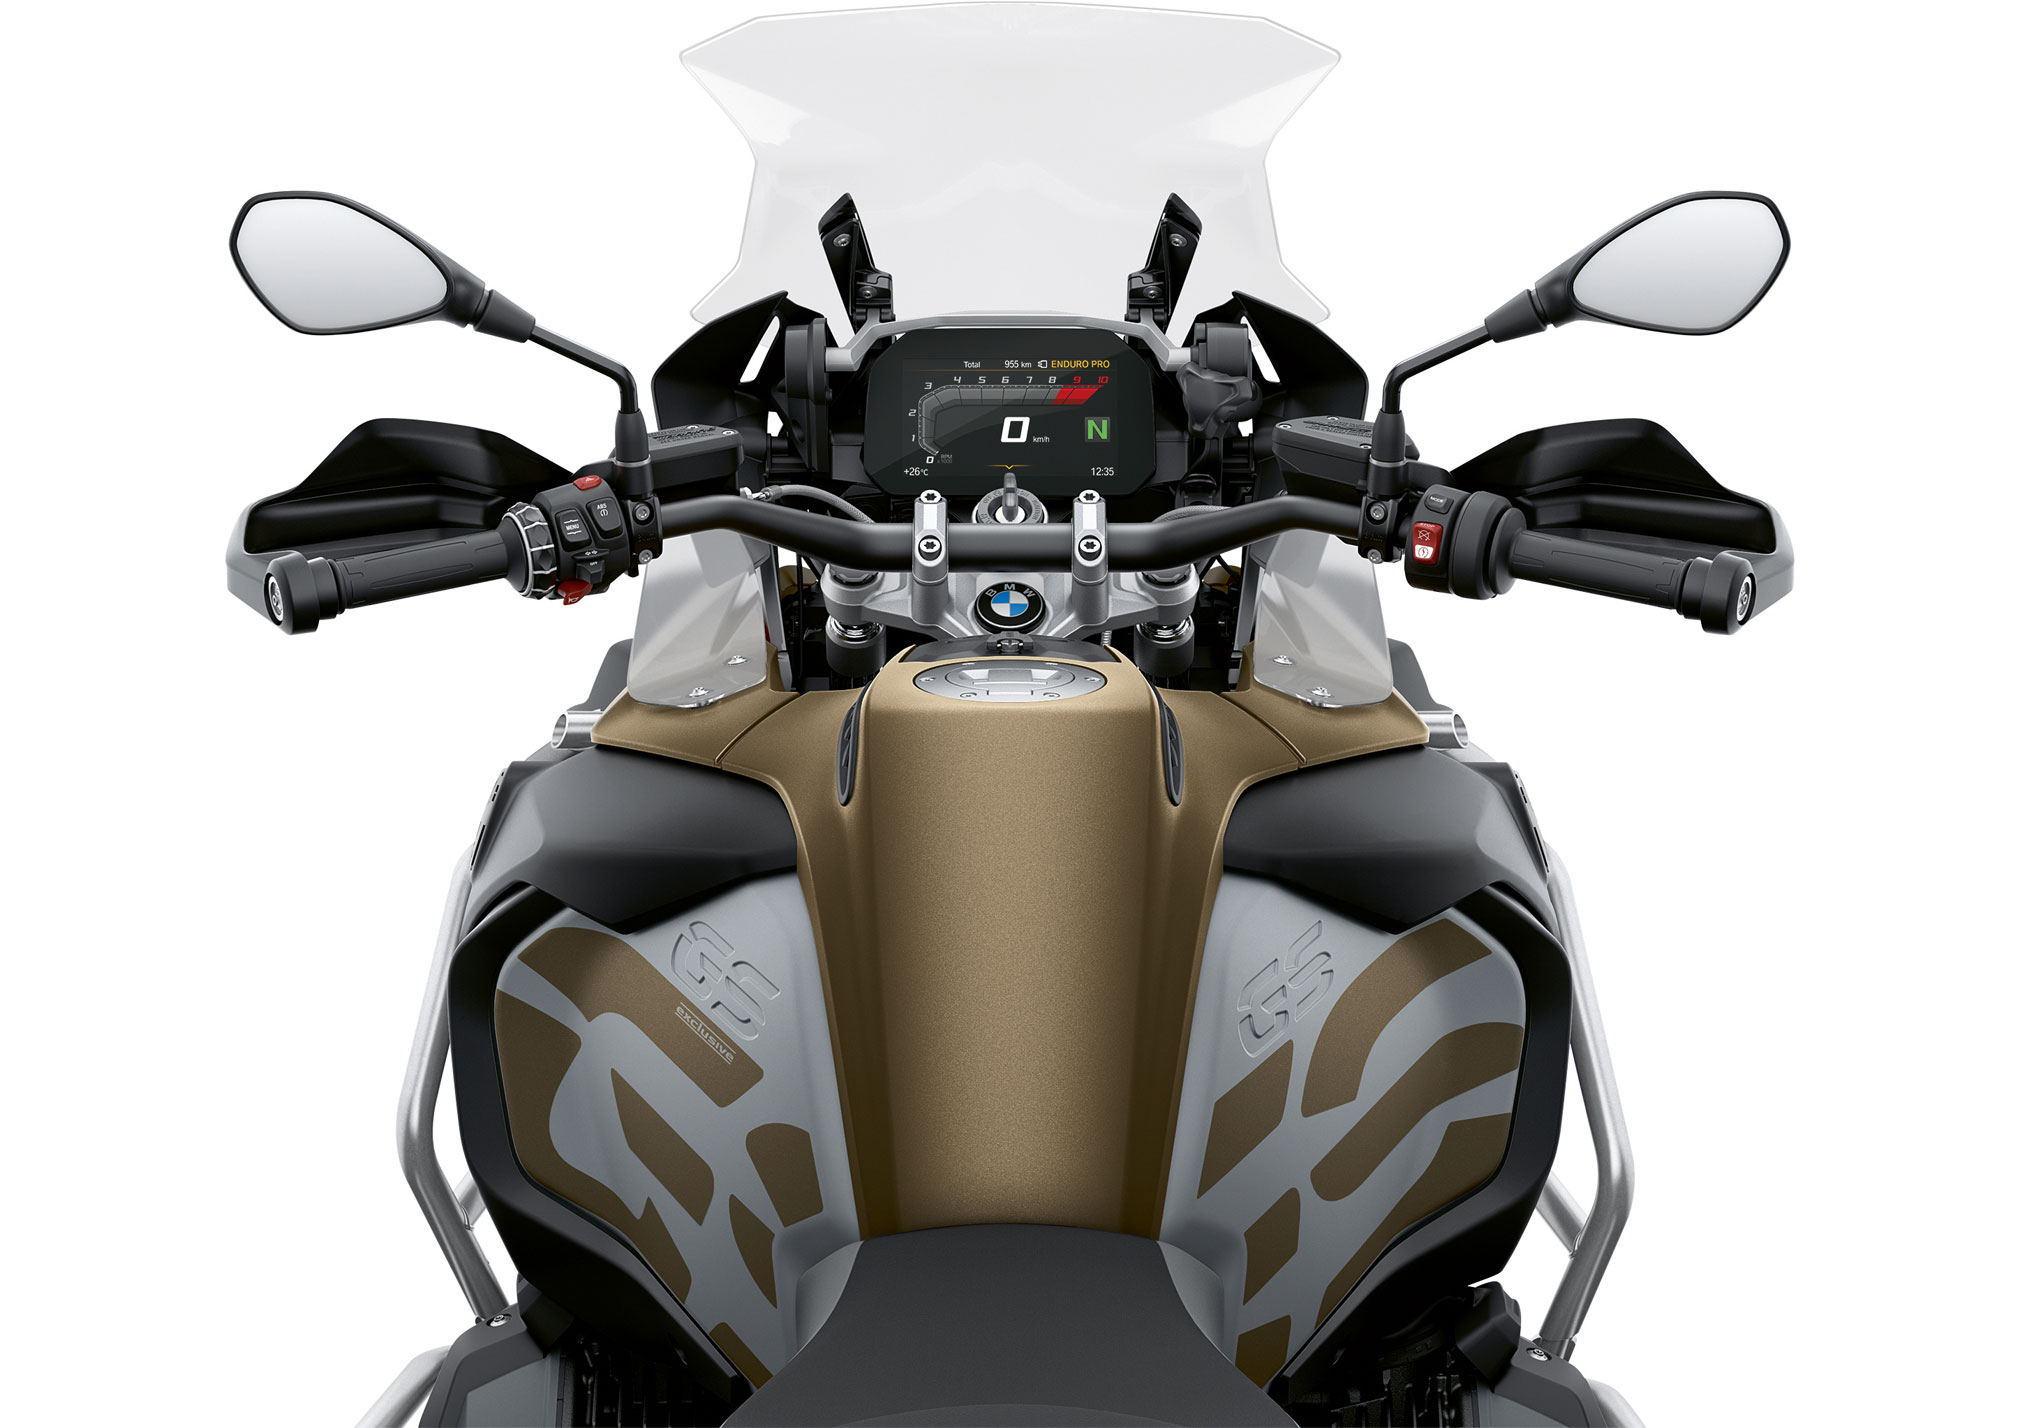 2020 BMW R1250GS Adventure Guide • Total Motorcycle